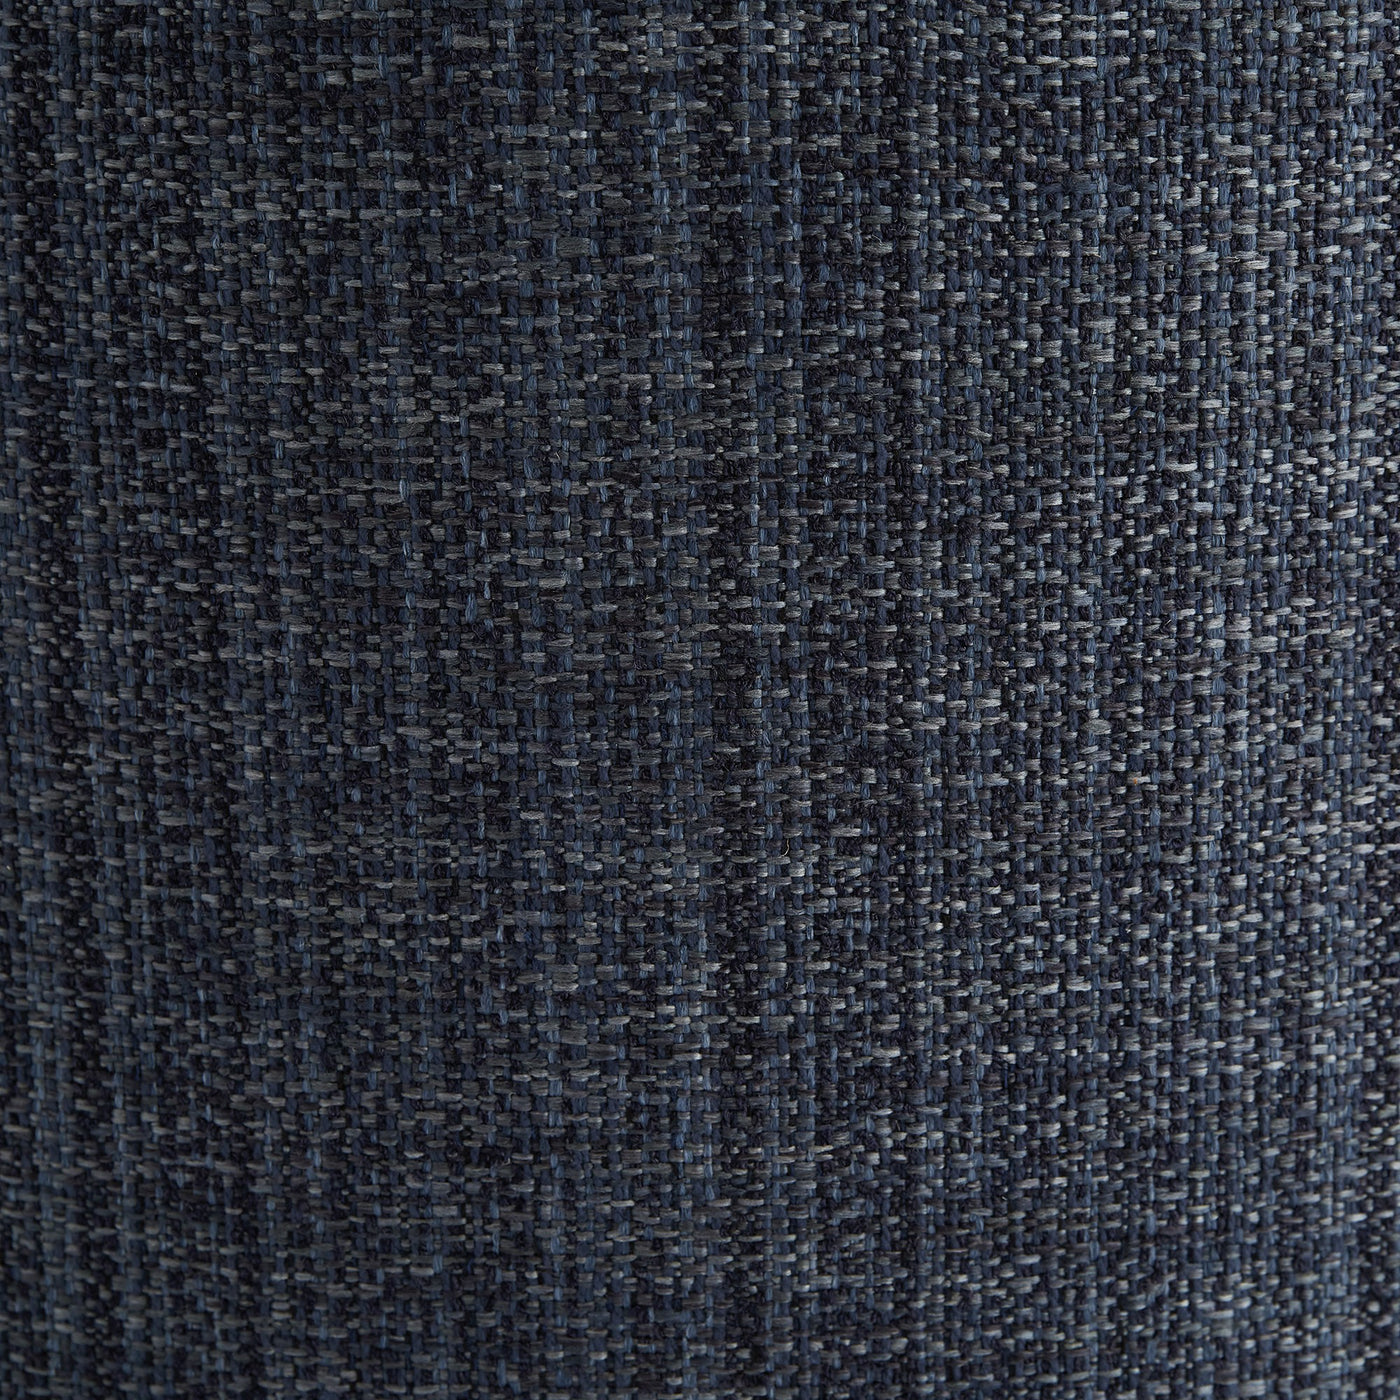 arteriors home springsteen chair indigo tweed fabric